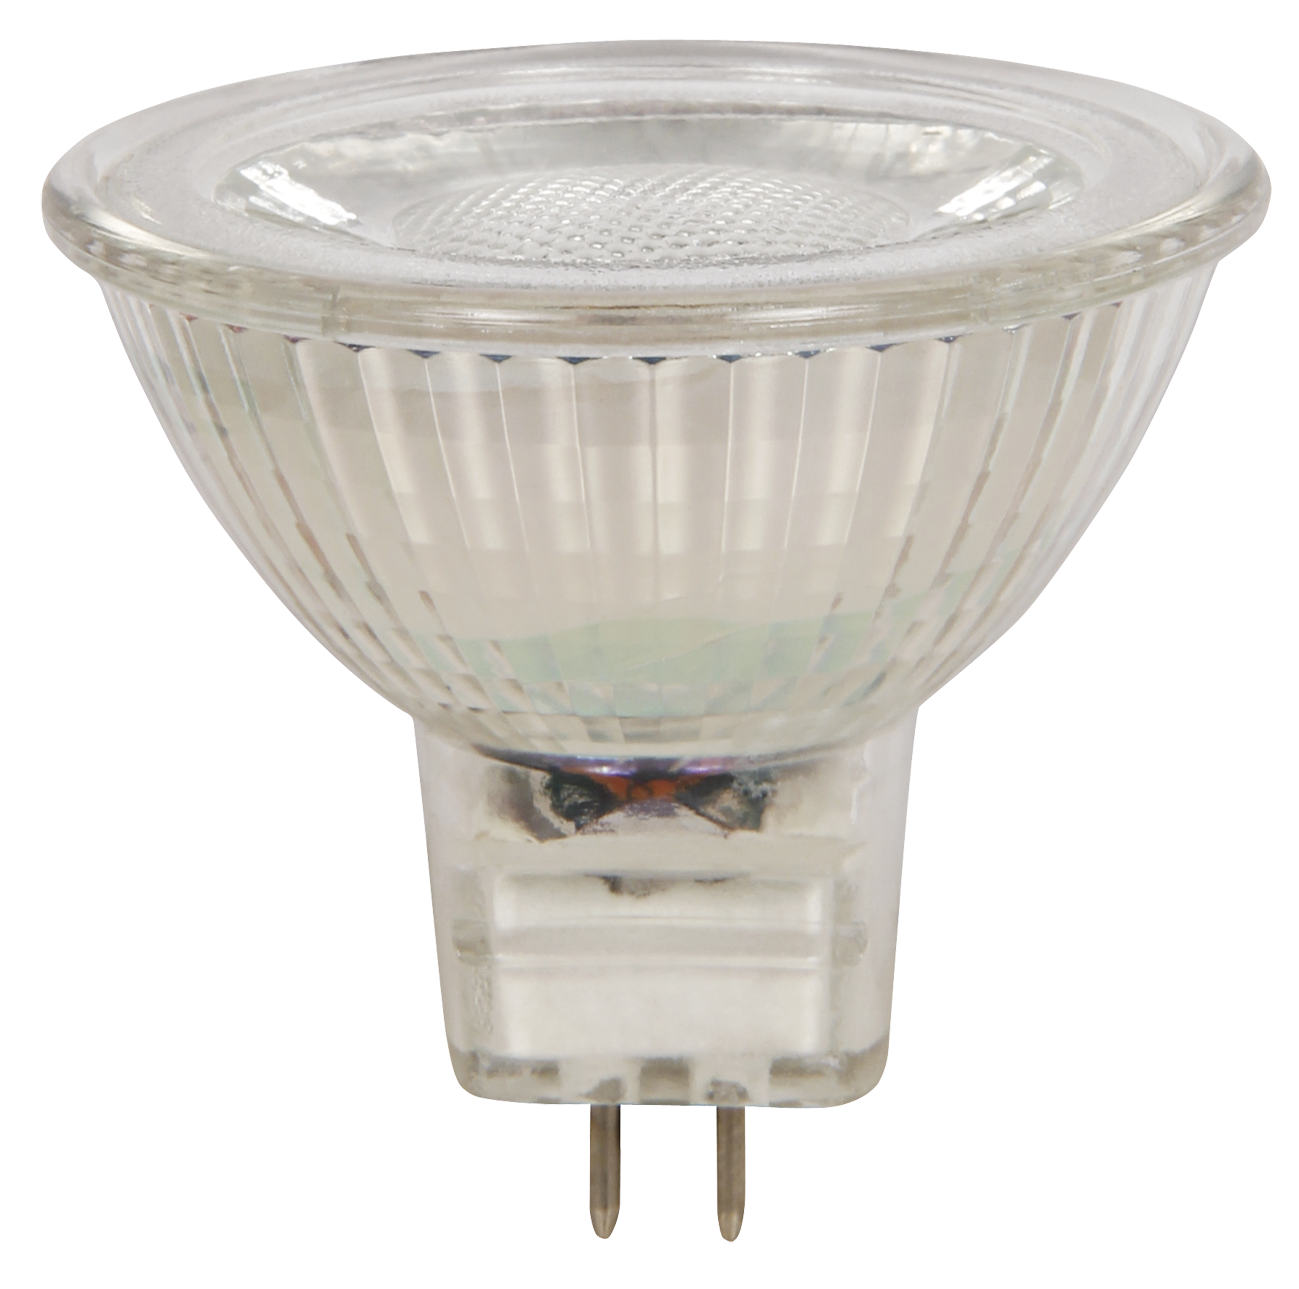 LED spot warmwit 3 Watt 250 lumen MR16